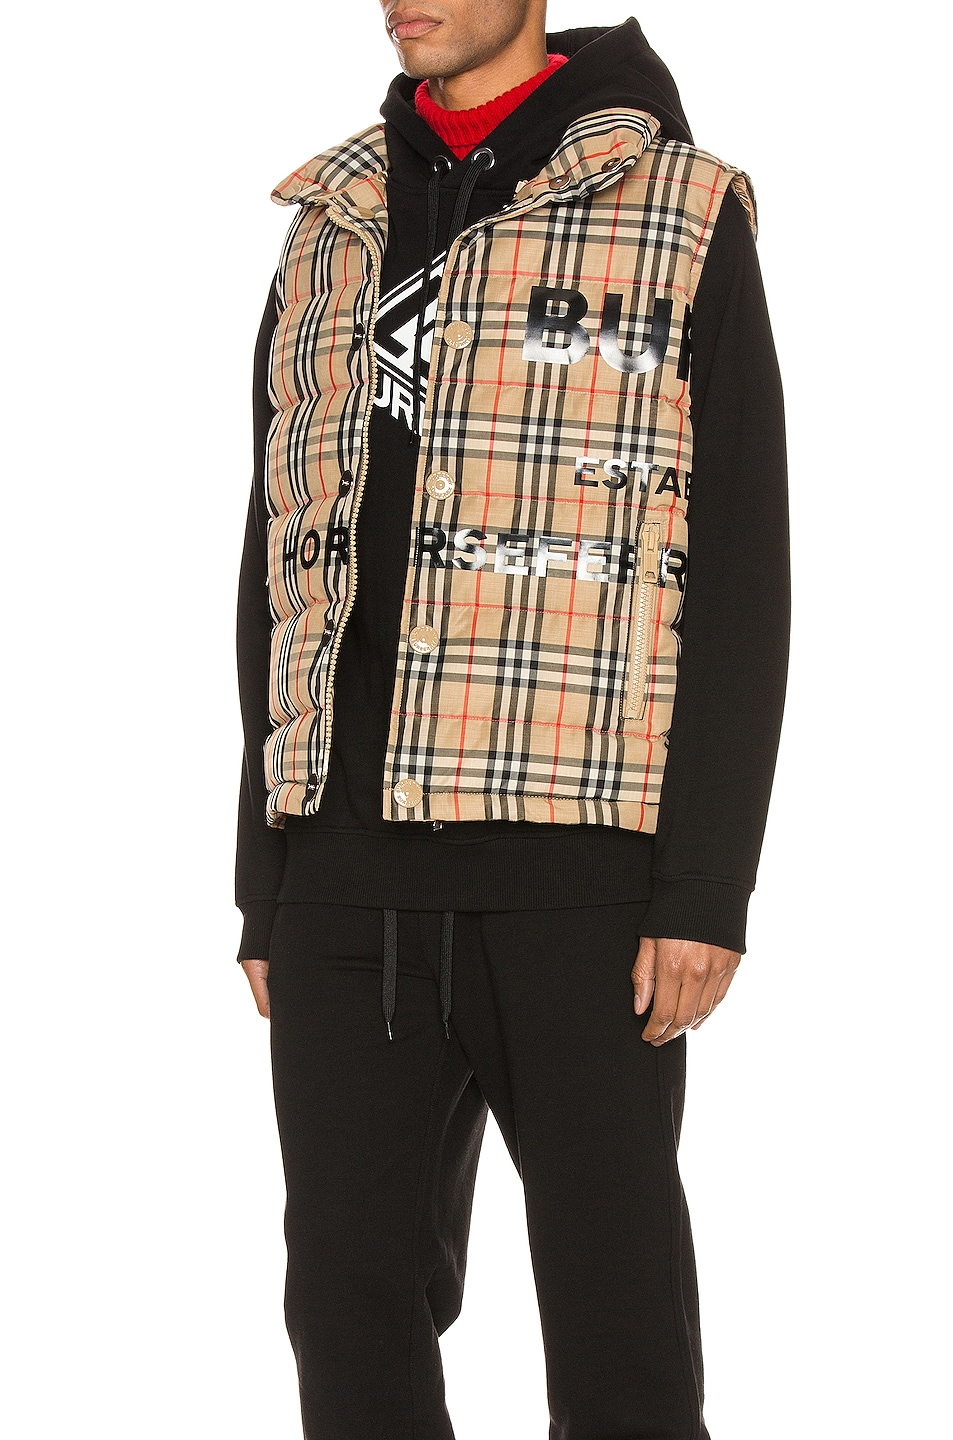 Image 4 of Burberry Midland Jacket in Archive Beige IP Check